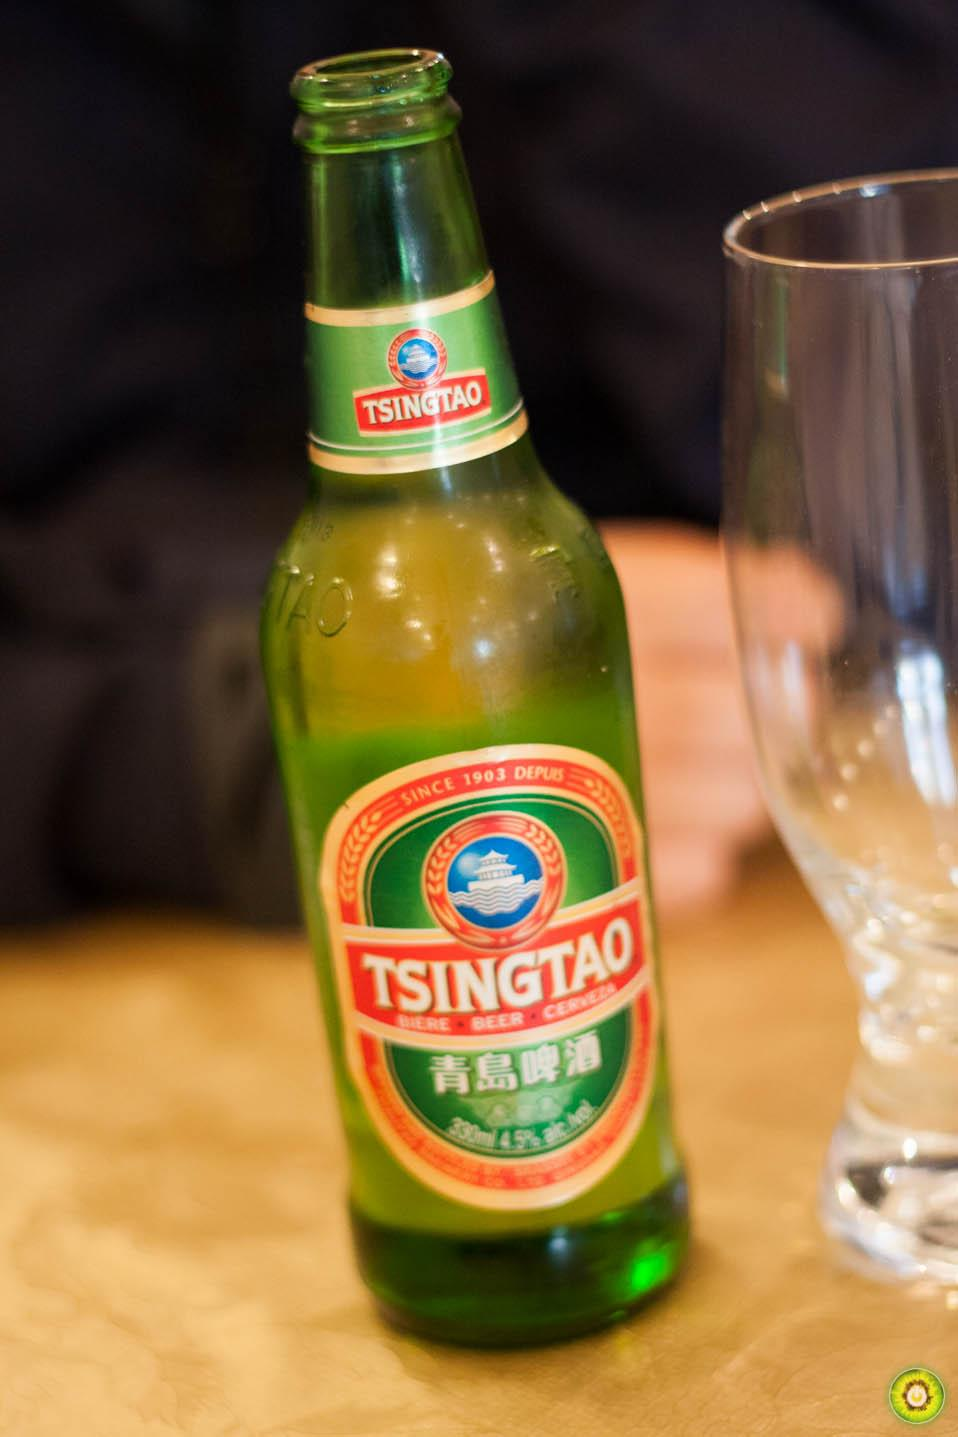 tsingtao brewery essays Free essay: integrated marketing communication plan: reposition tsingtao beer in uk executive summary tsingtao beer is the largest beer brewery in asia, and.